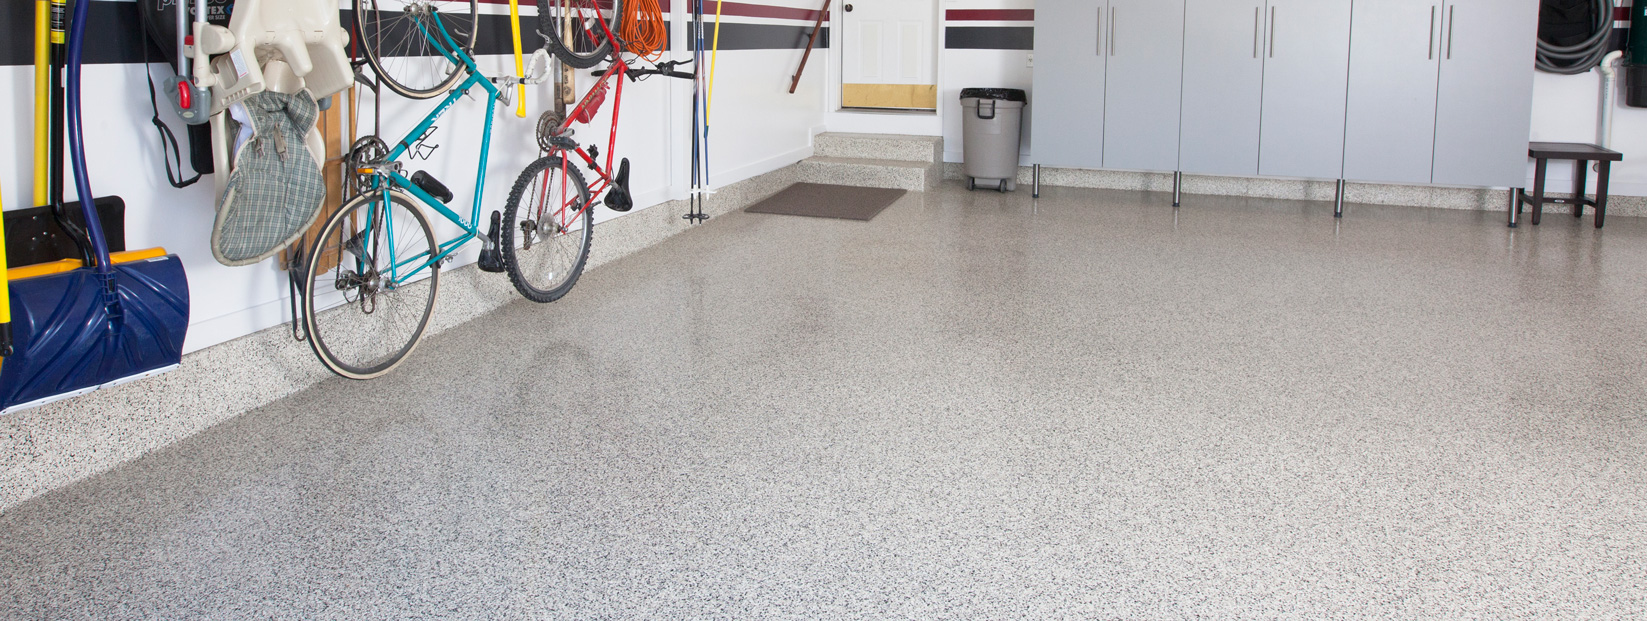 Garage Flooring Miami